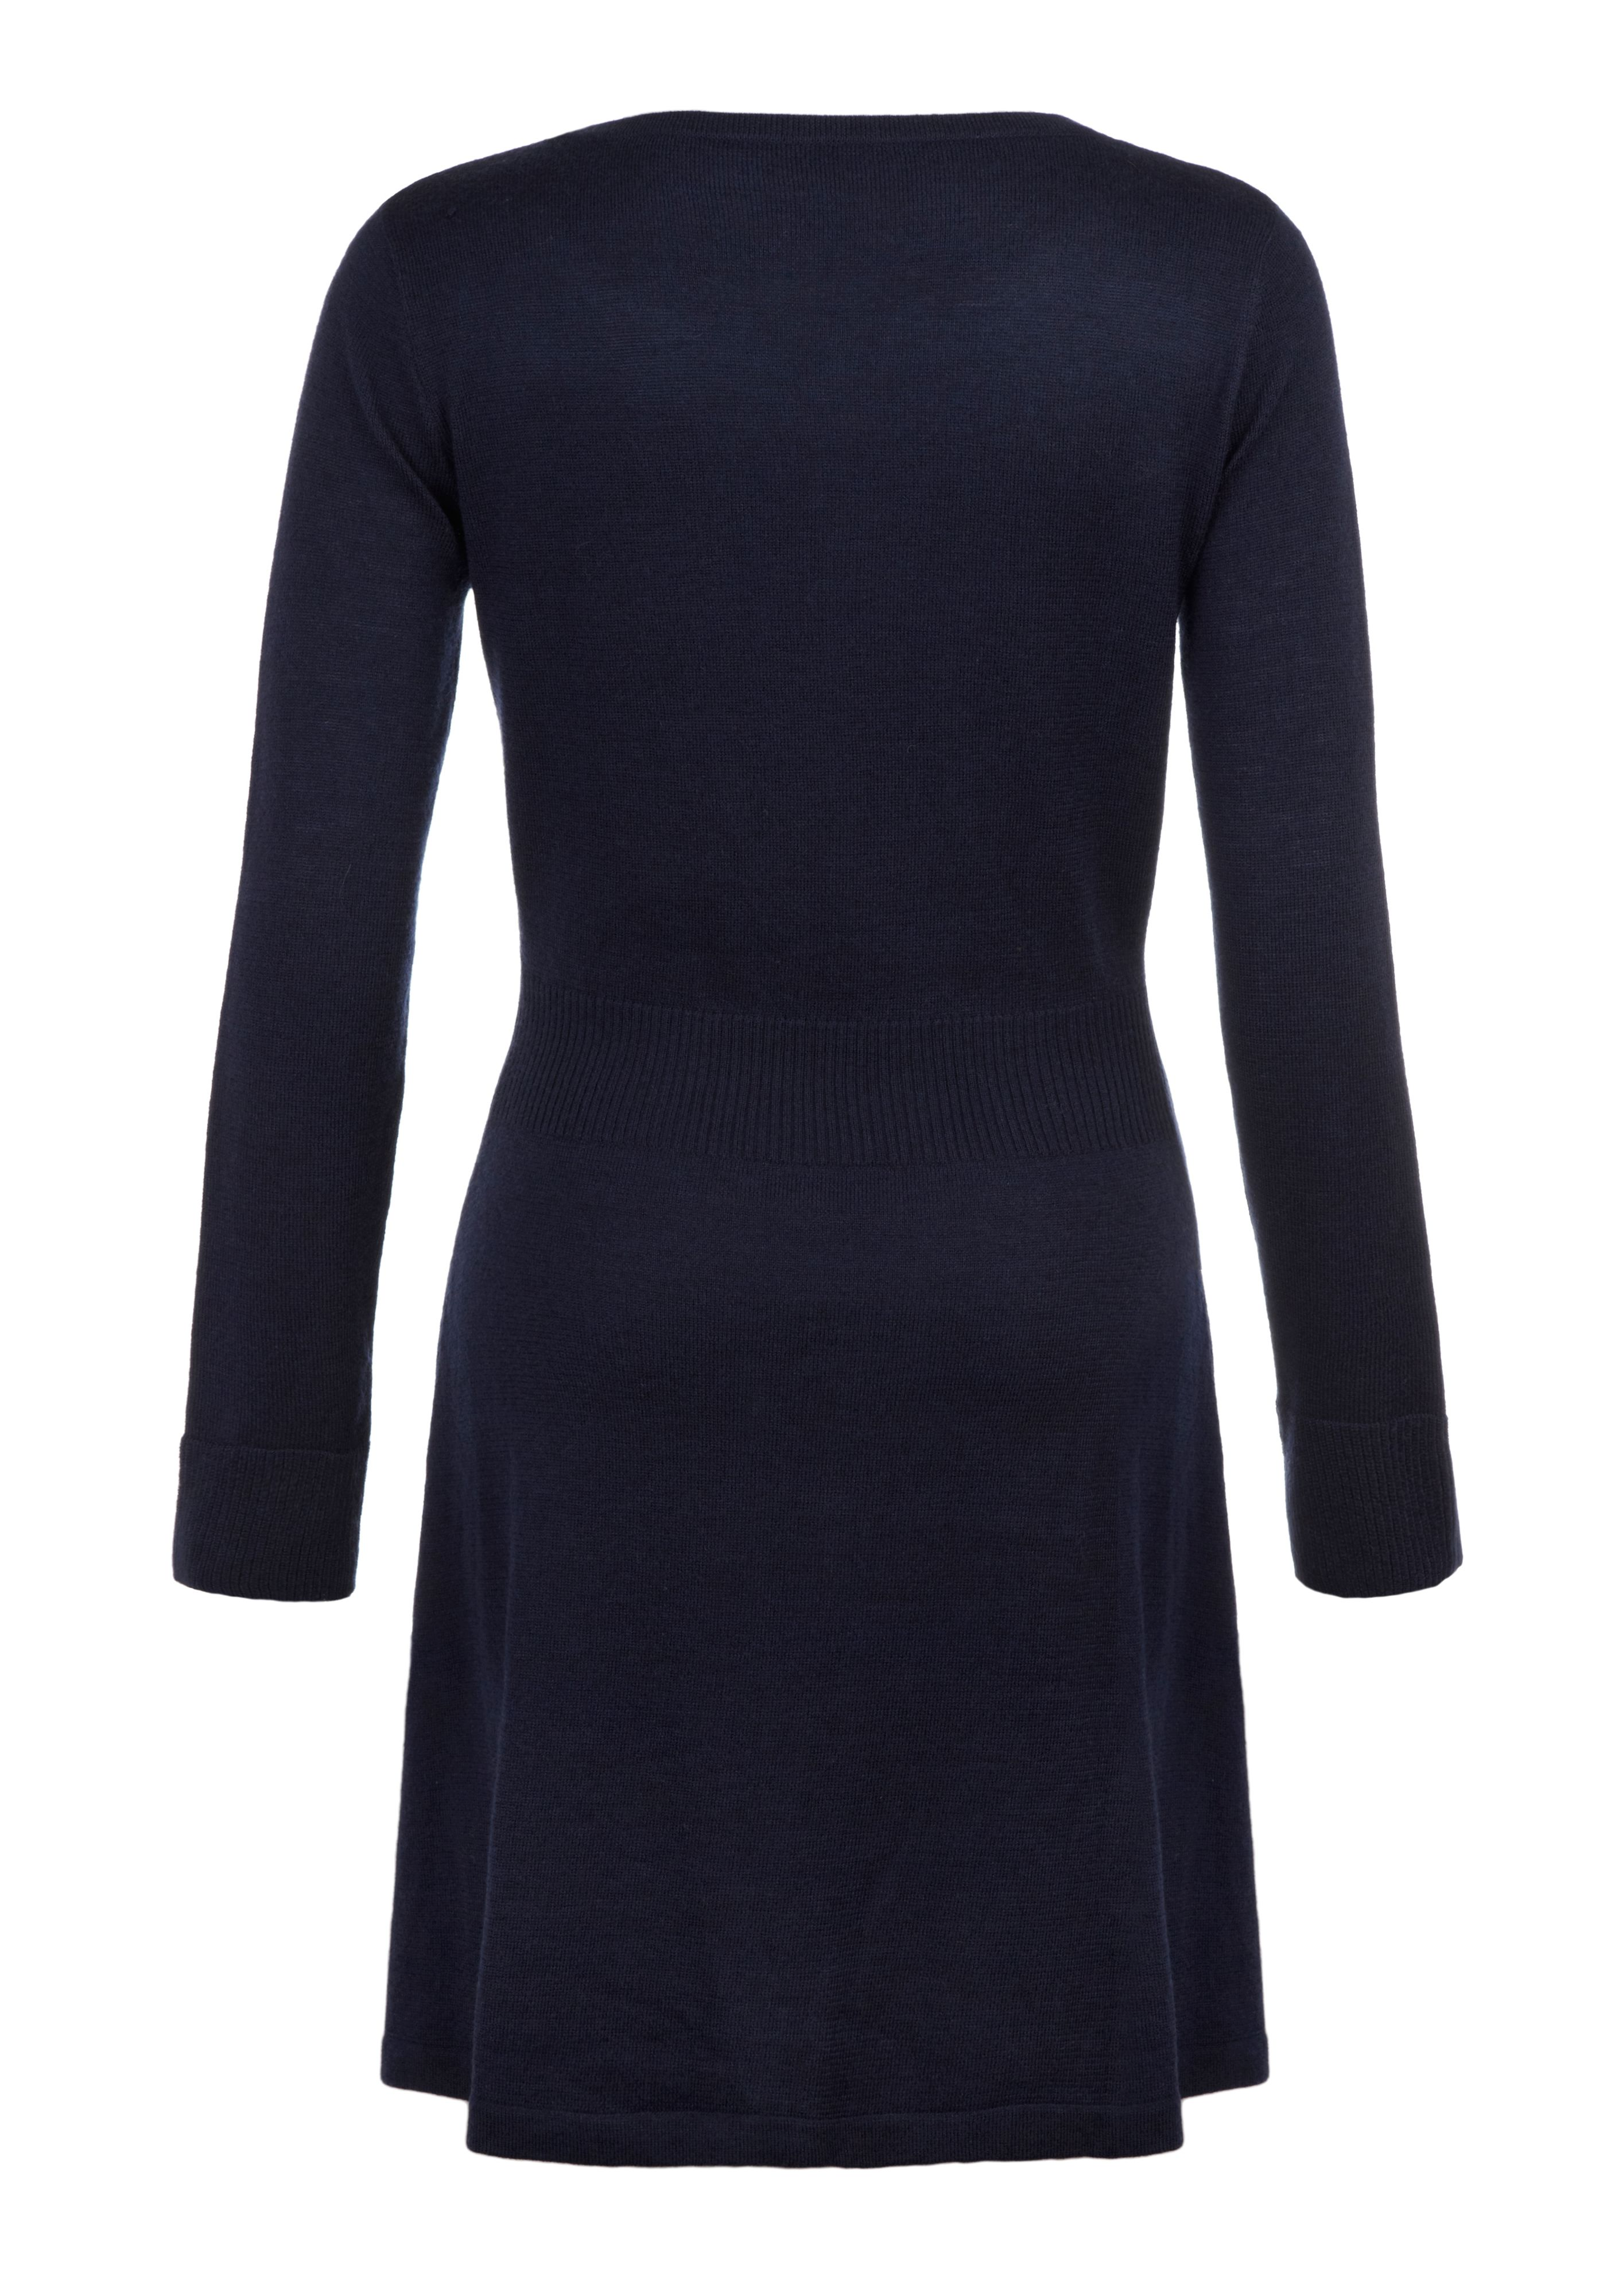 Daisy Rounded Collar Knitted Dress